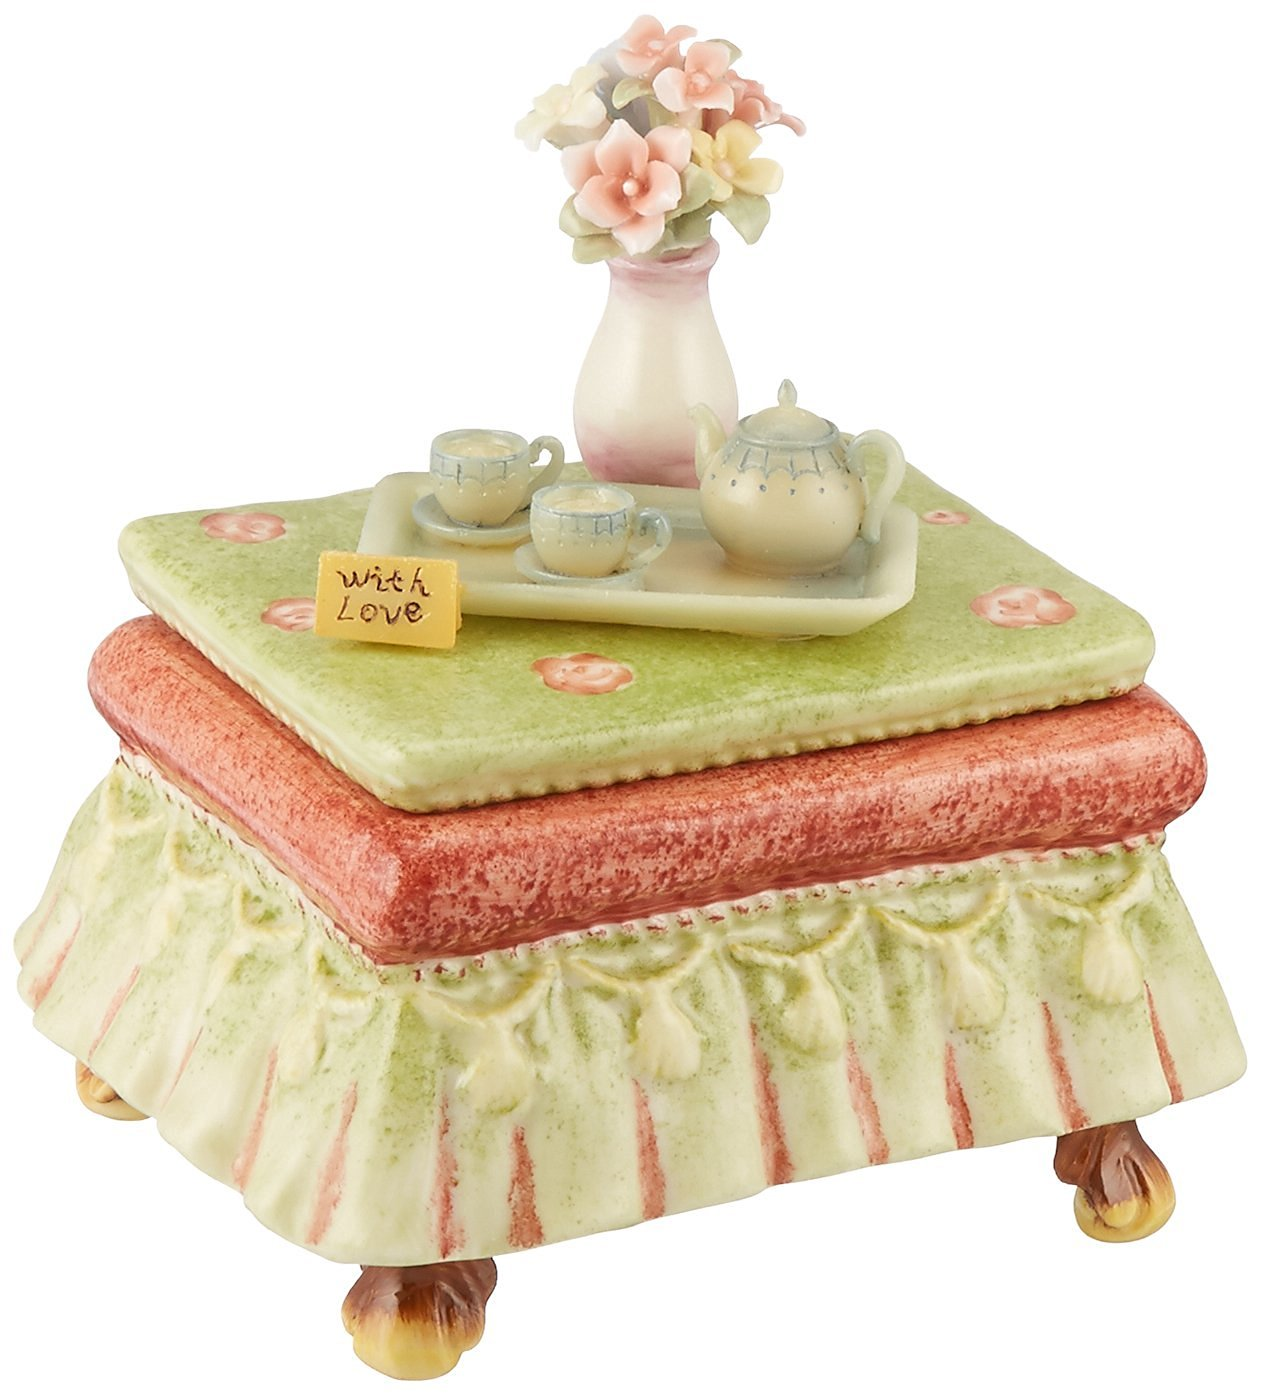 Cosmos 80109 Fine Porcelain Tea Side Table Musical Figurine, 4-3/8-Inch